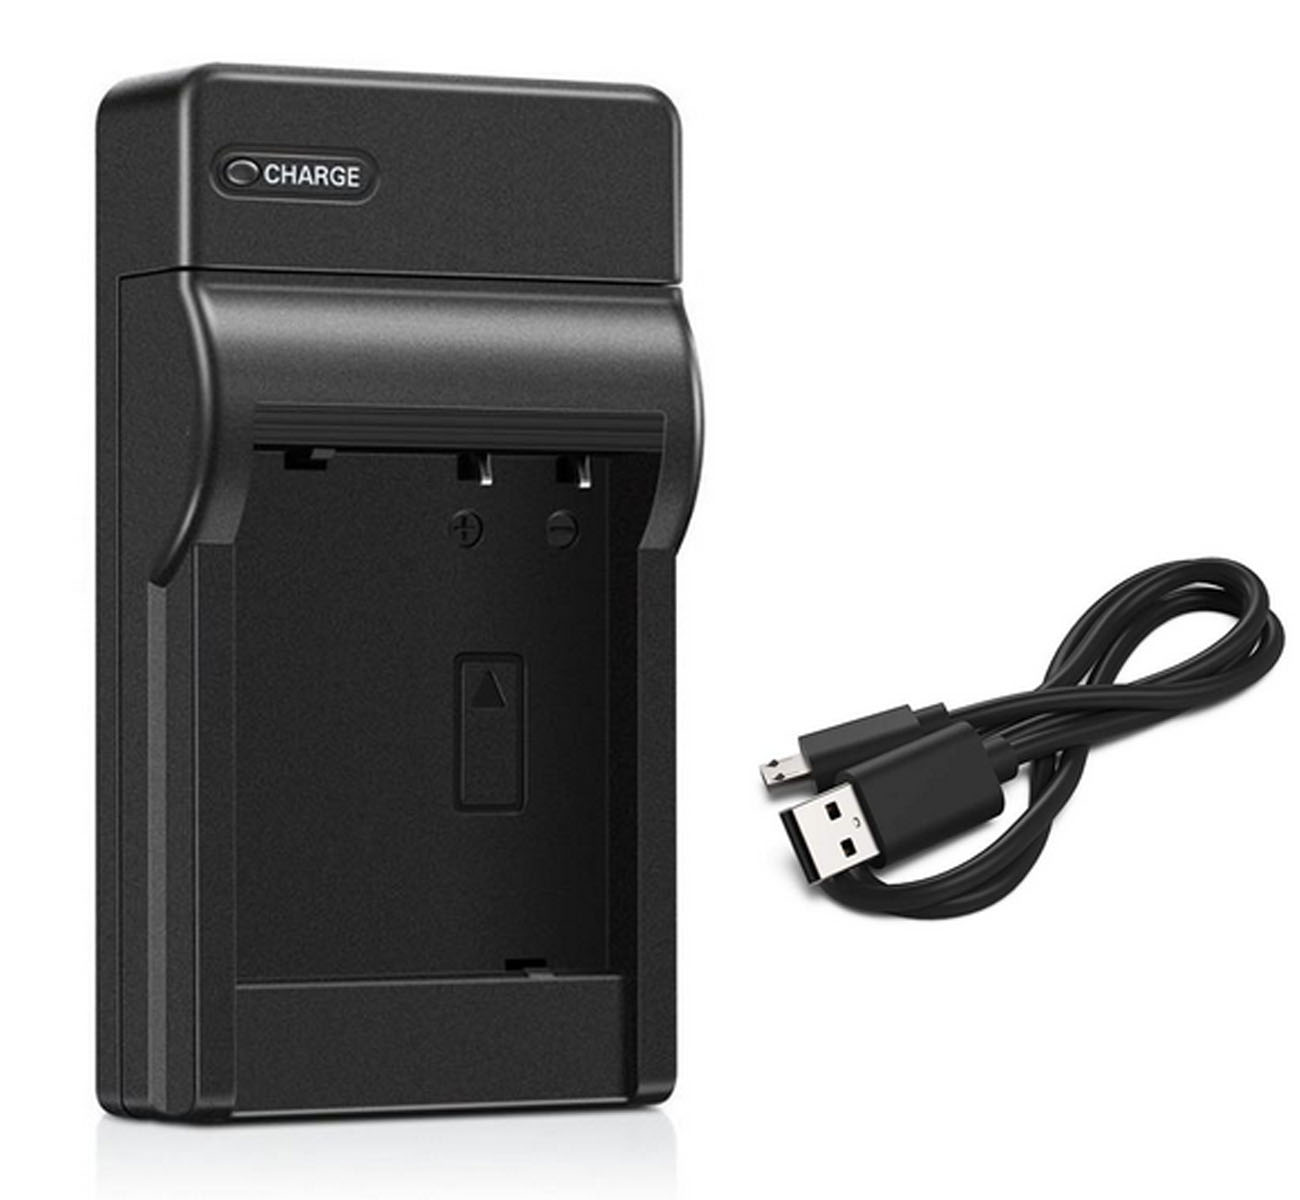 <font><b>Battery</b></font> <font><b>Charger</b></font> for <font><b>Nikon</b></font> D40, D40x, D60, <font><b>D3000</b></font>, D5000 Digital SLR Camera DSLR image